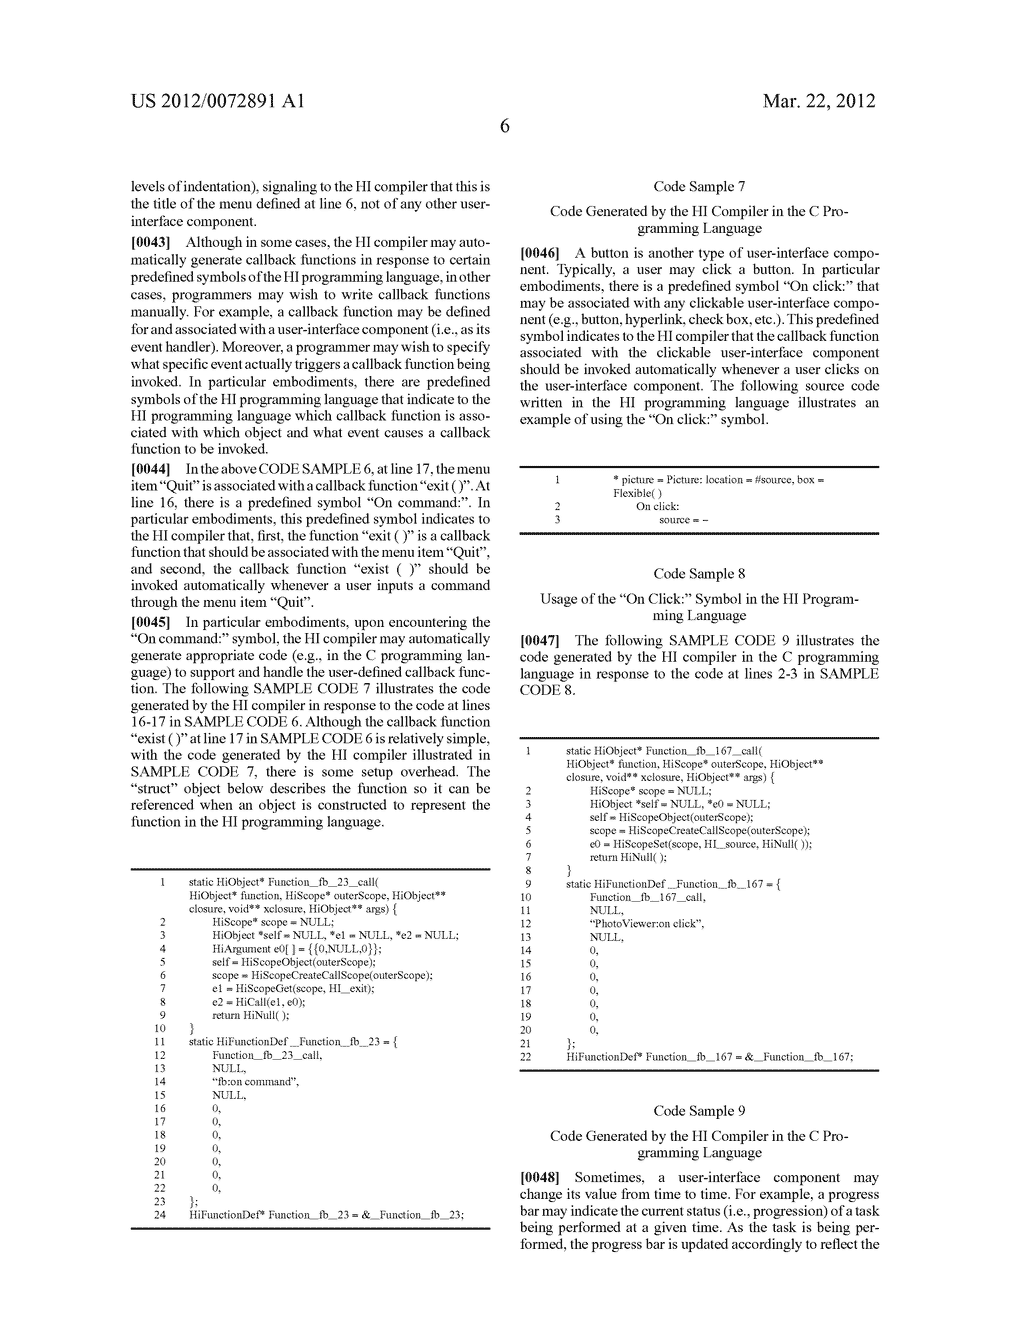 Computer Language Syntax for Automatic Callback Function Generation - diagram, schematic, and image 10